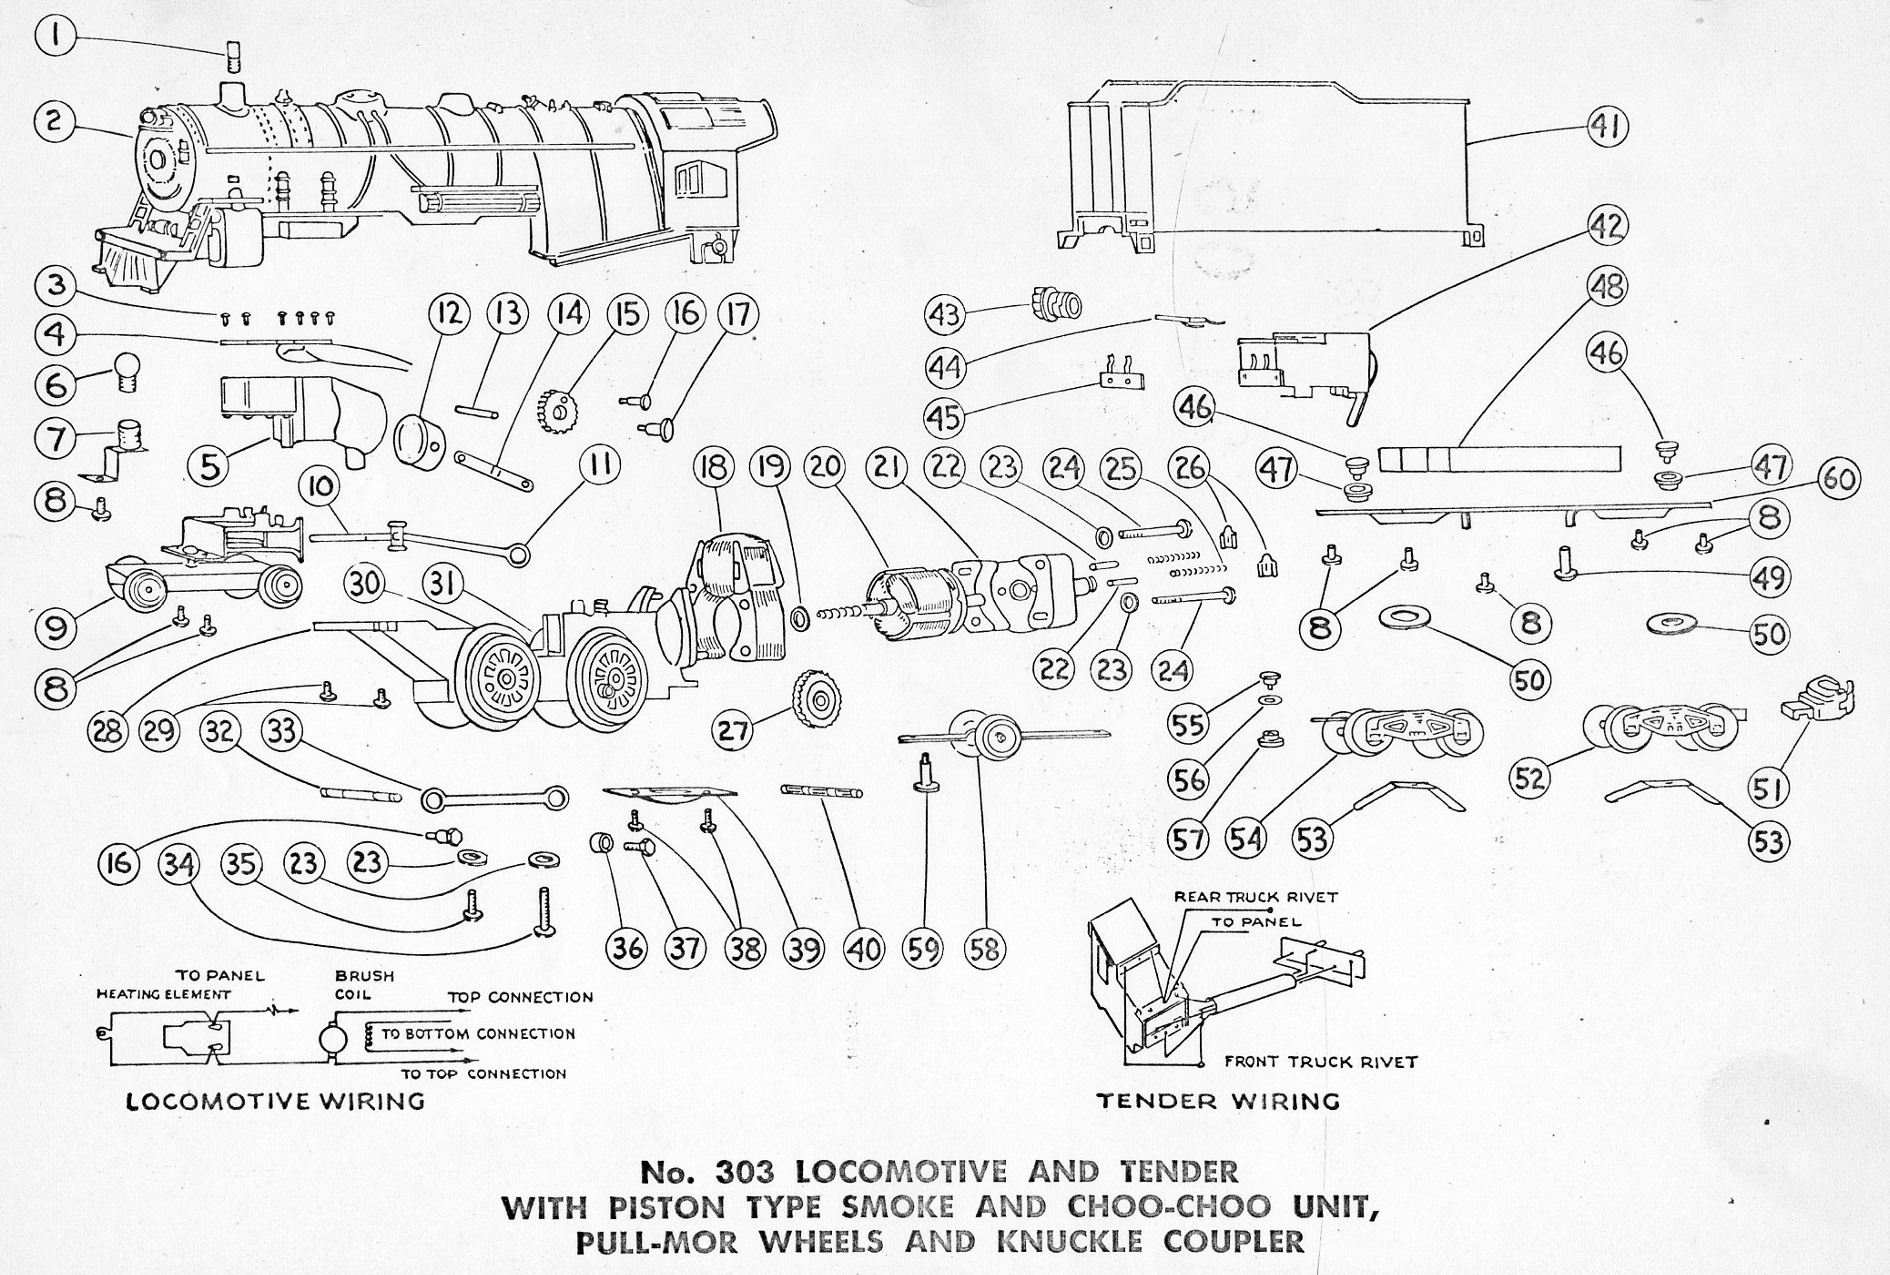 american flyer locomotive 303 parts list and diagram